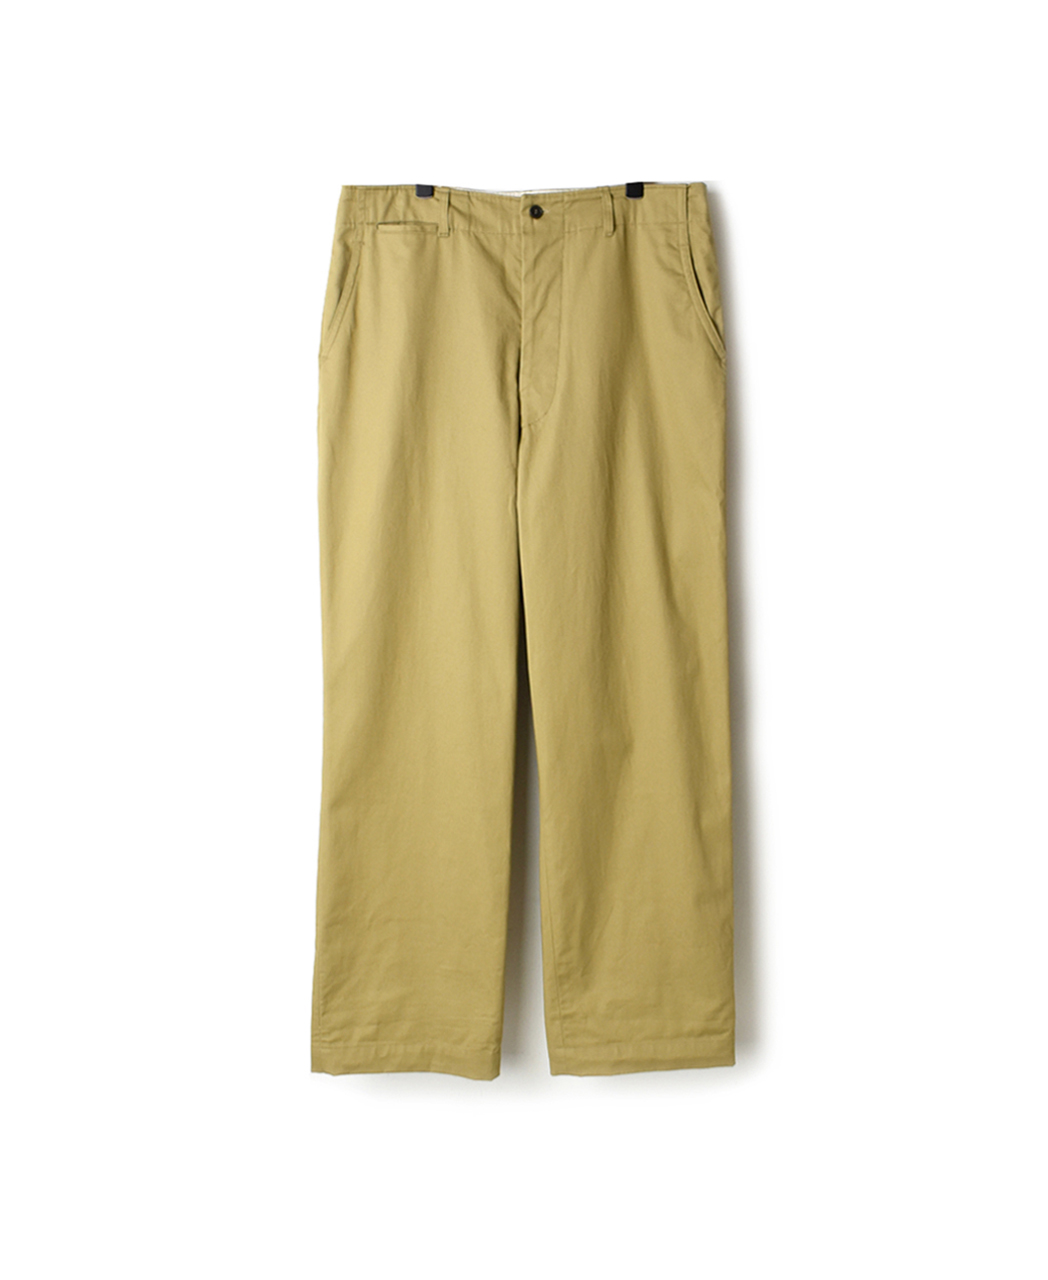 GNMDS1951 8.8oz AUTHENTUC CHINO PANTS